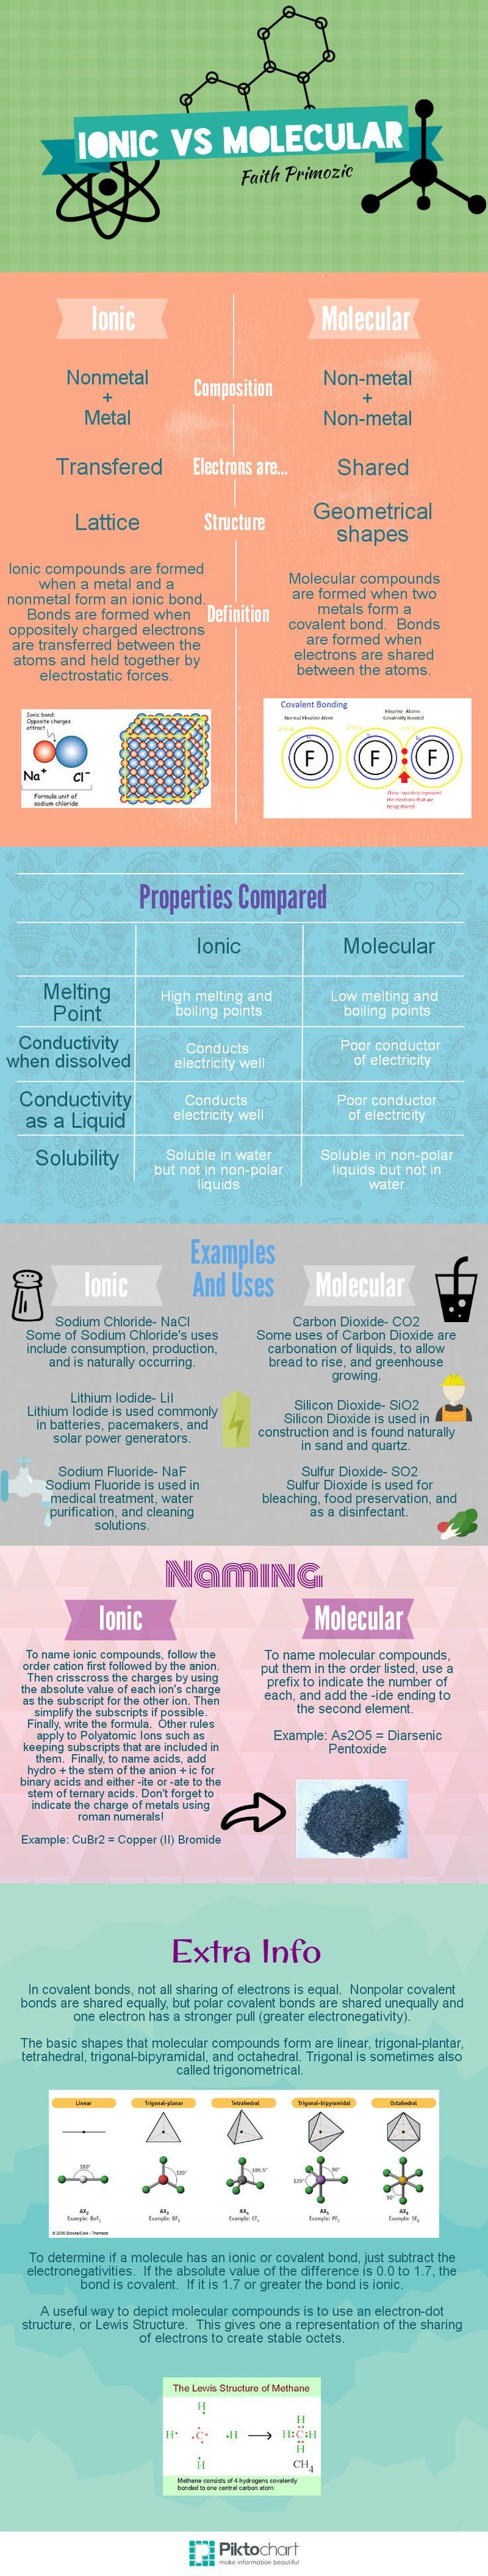 Ionic and Molecular Compounds Infographic misses out giant covalent yet lists SiO2 as covalent example.